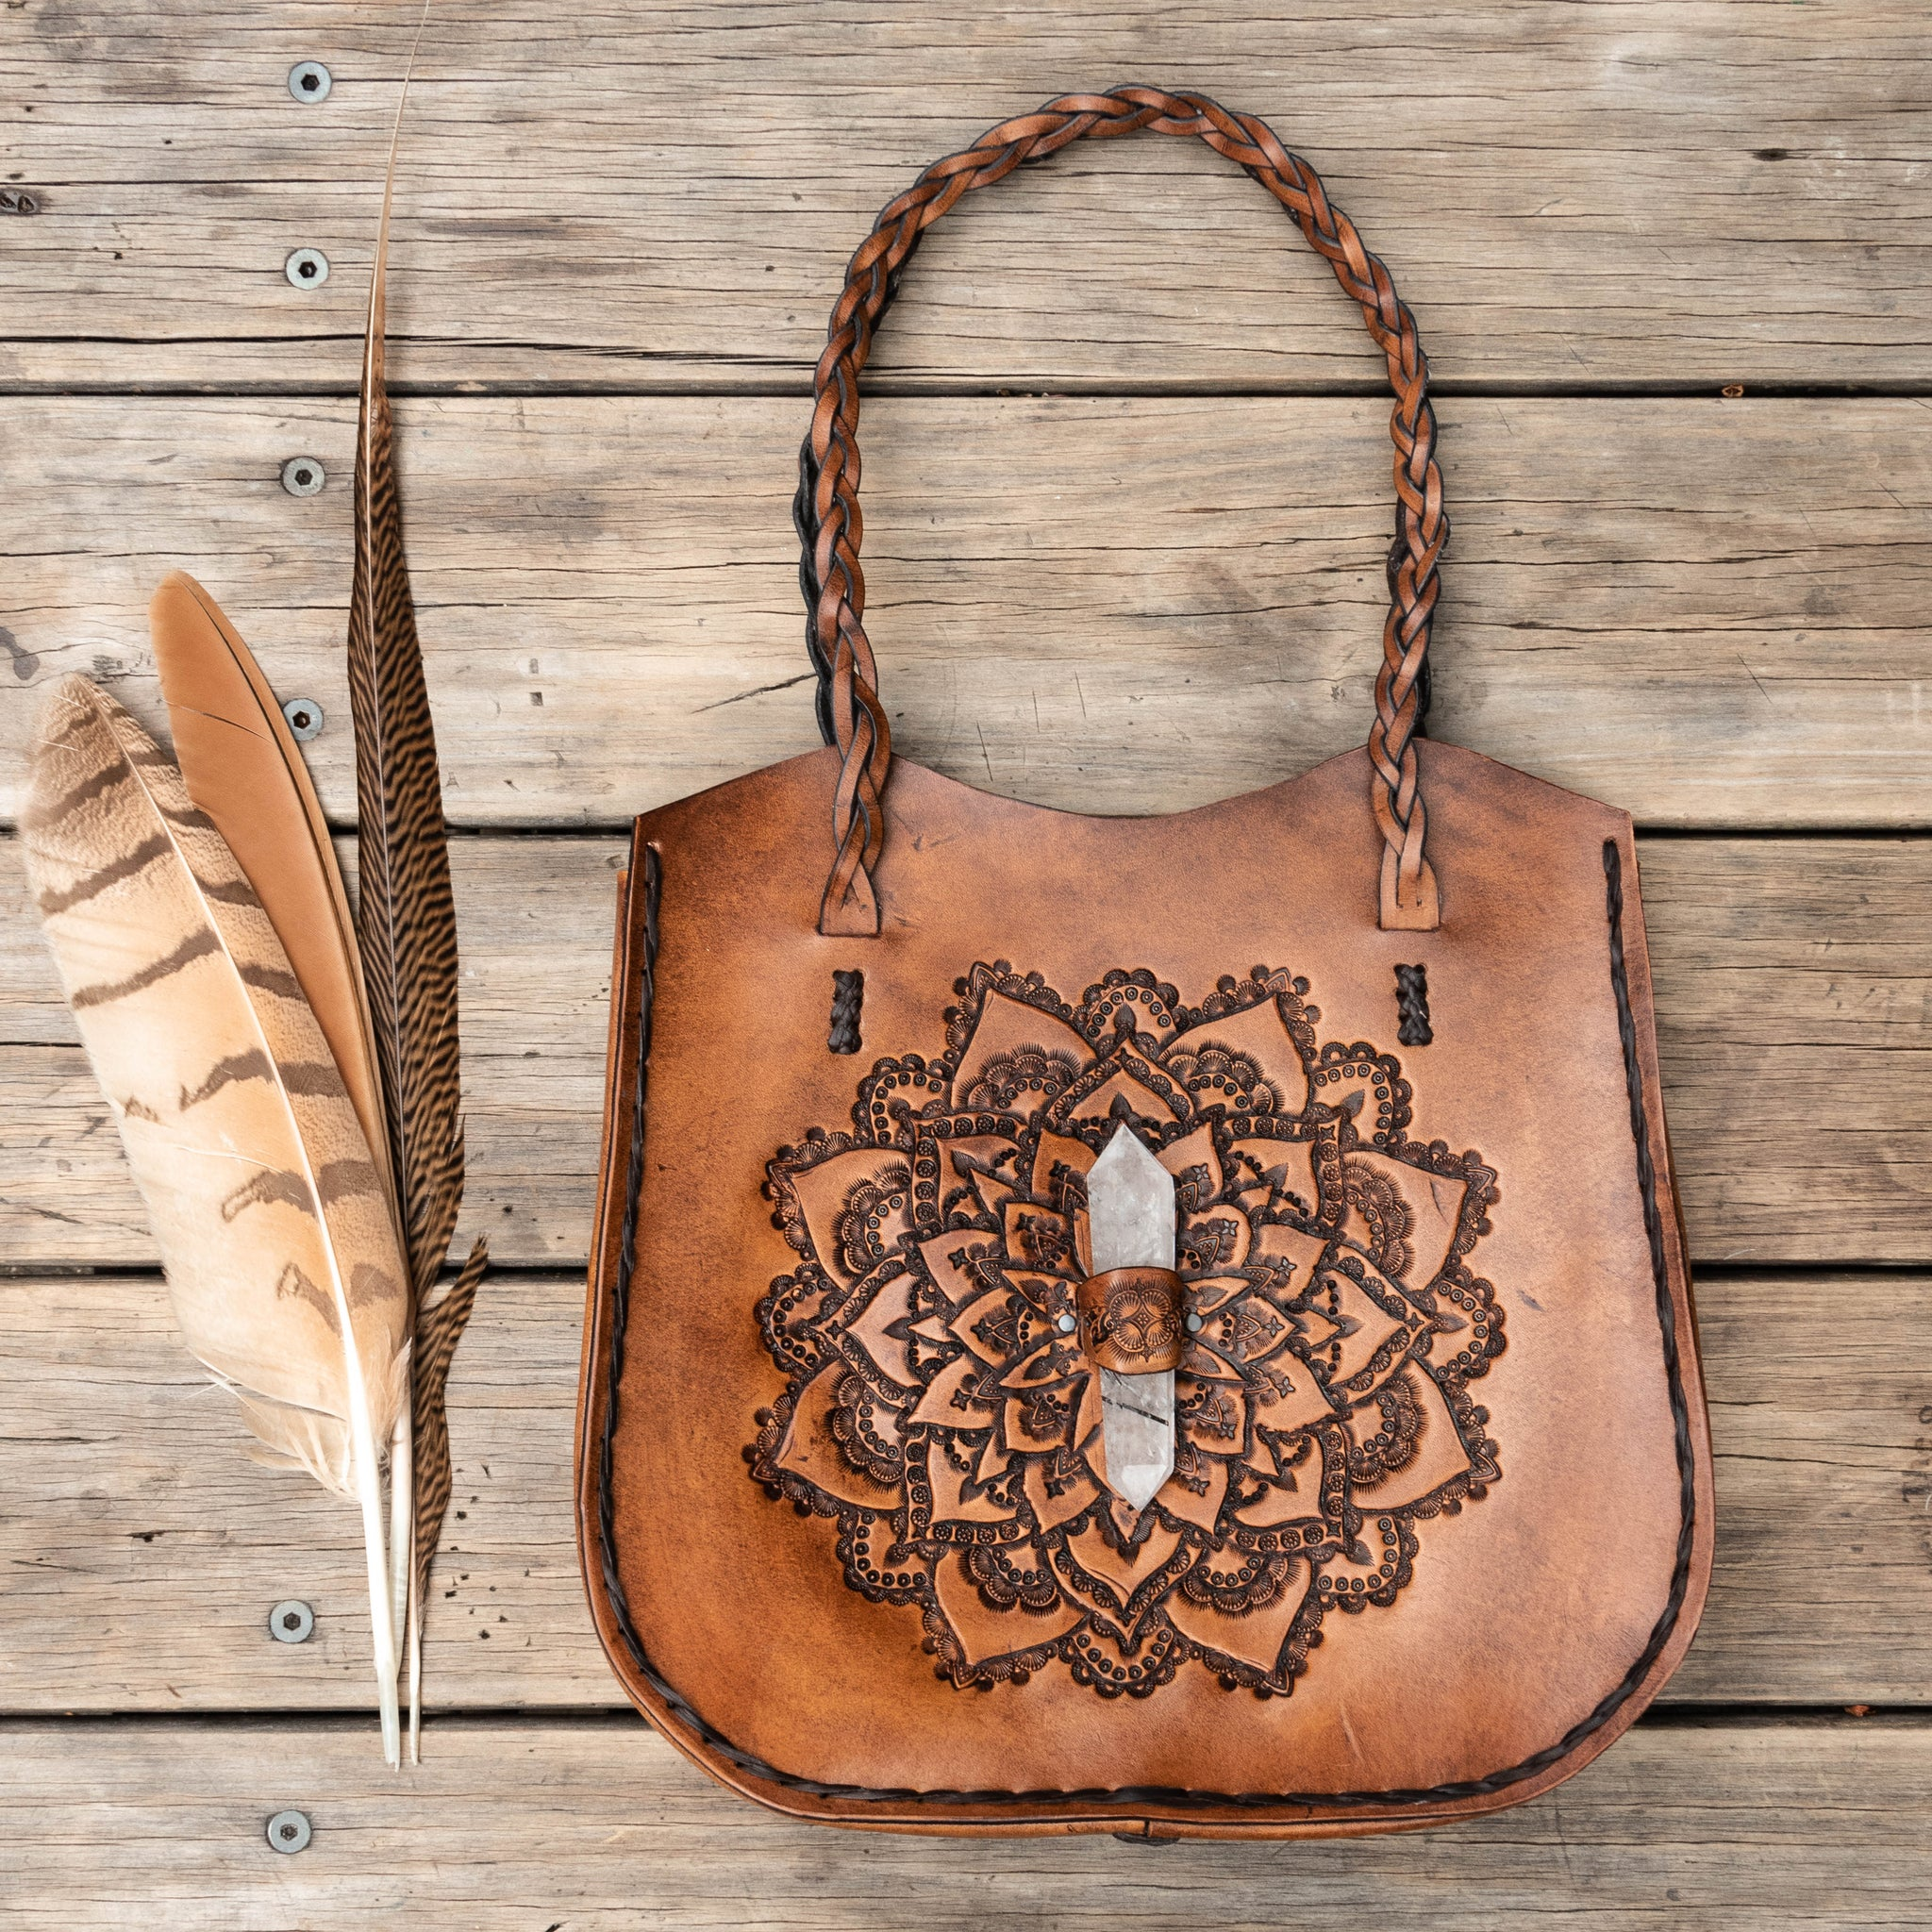 Hand tooled vegetable tan leather Megastar Mandala Tote Bag with Quartz Crystal - $2200